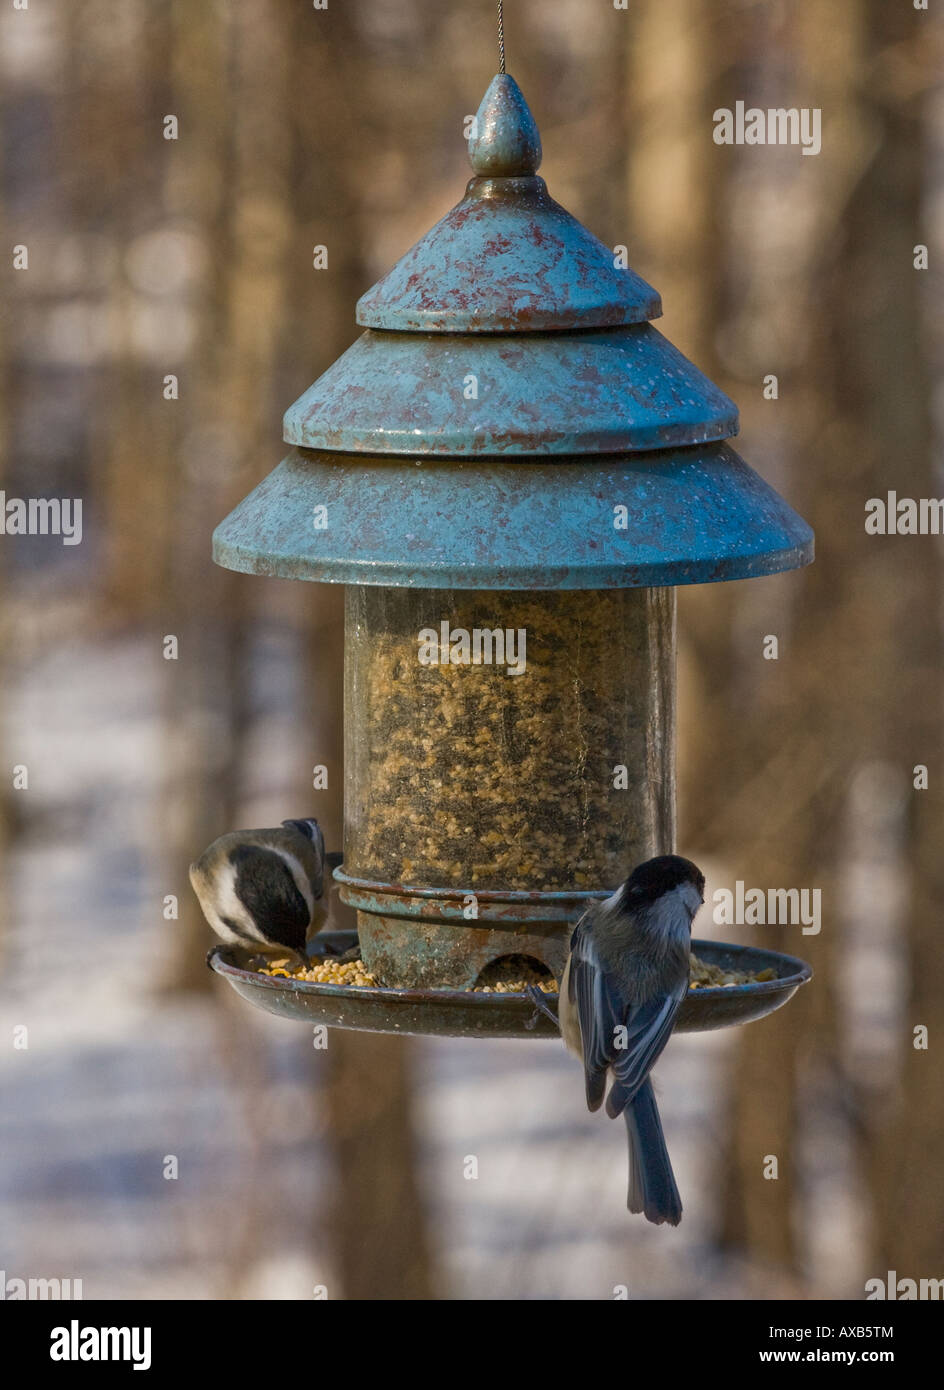 black capped chickadees on bird feeder - Stock Image